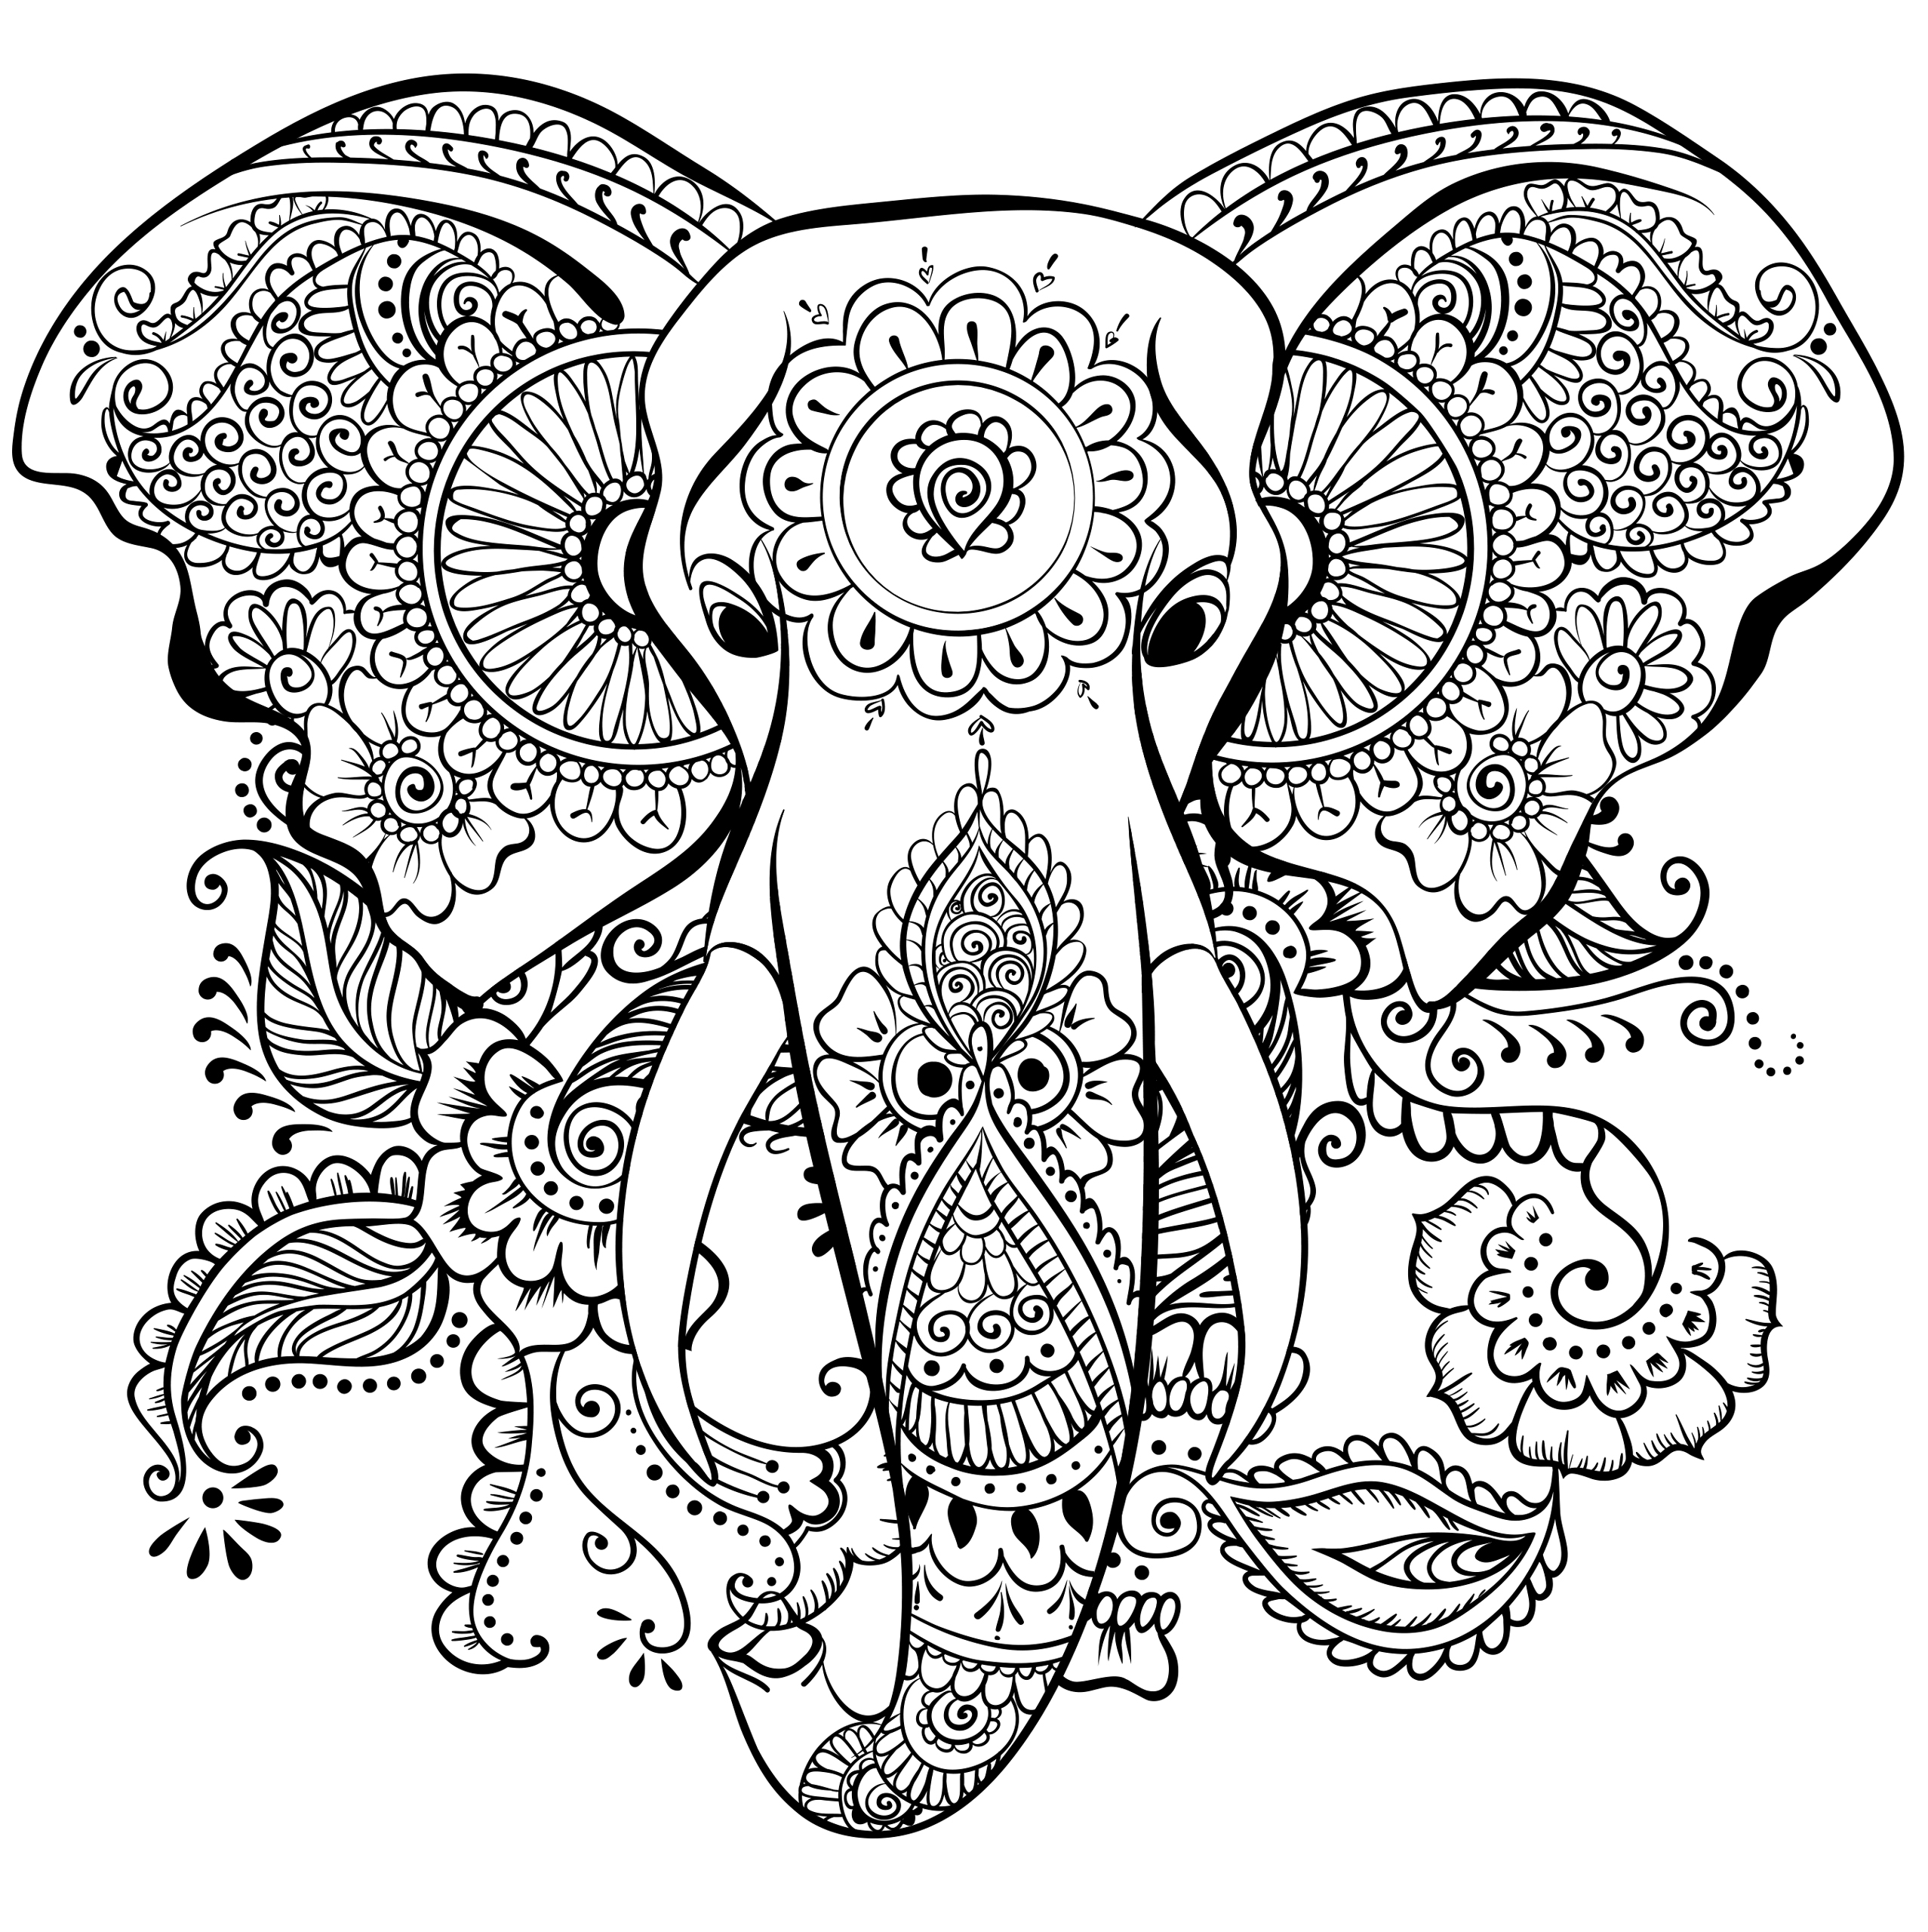 printable elephant coloring pages elegant drawing of an elephant elephants adult coloring pages printable elephant coloring